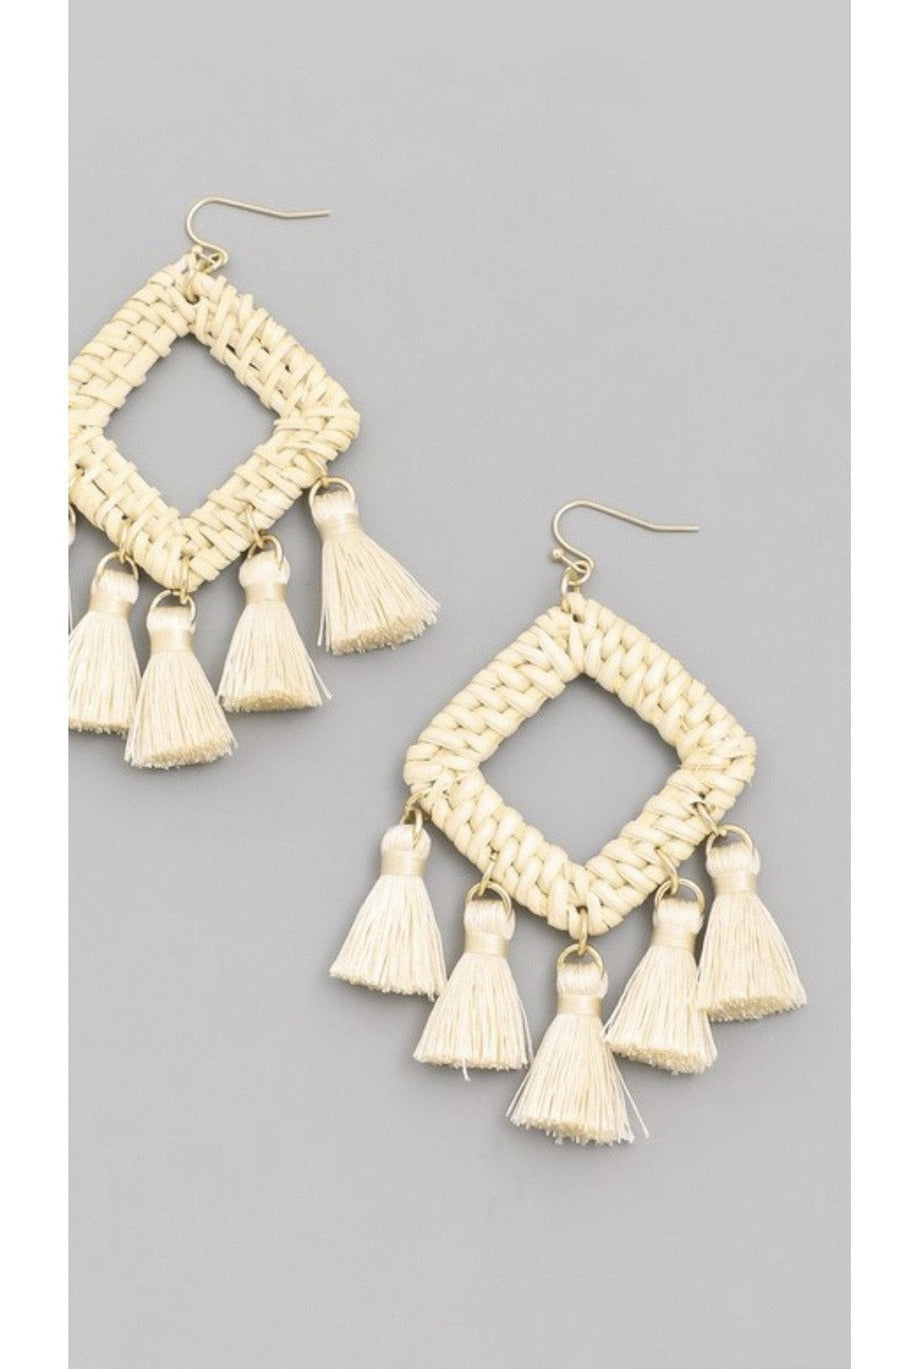 Malibu Earrings